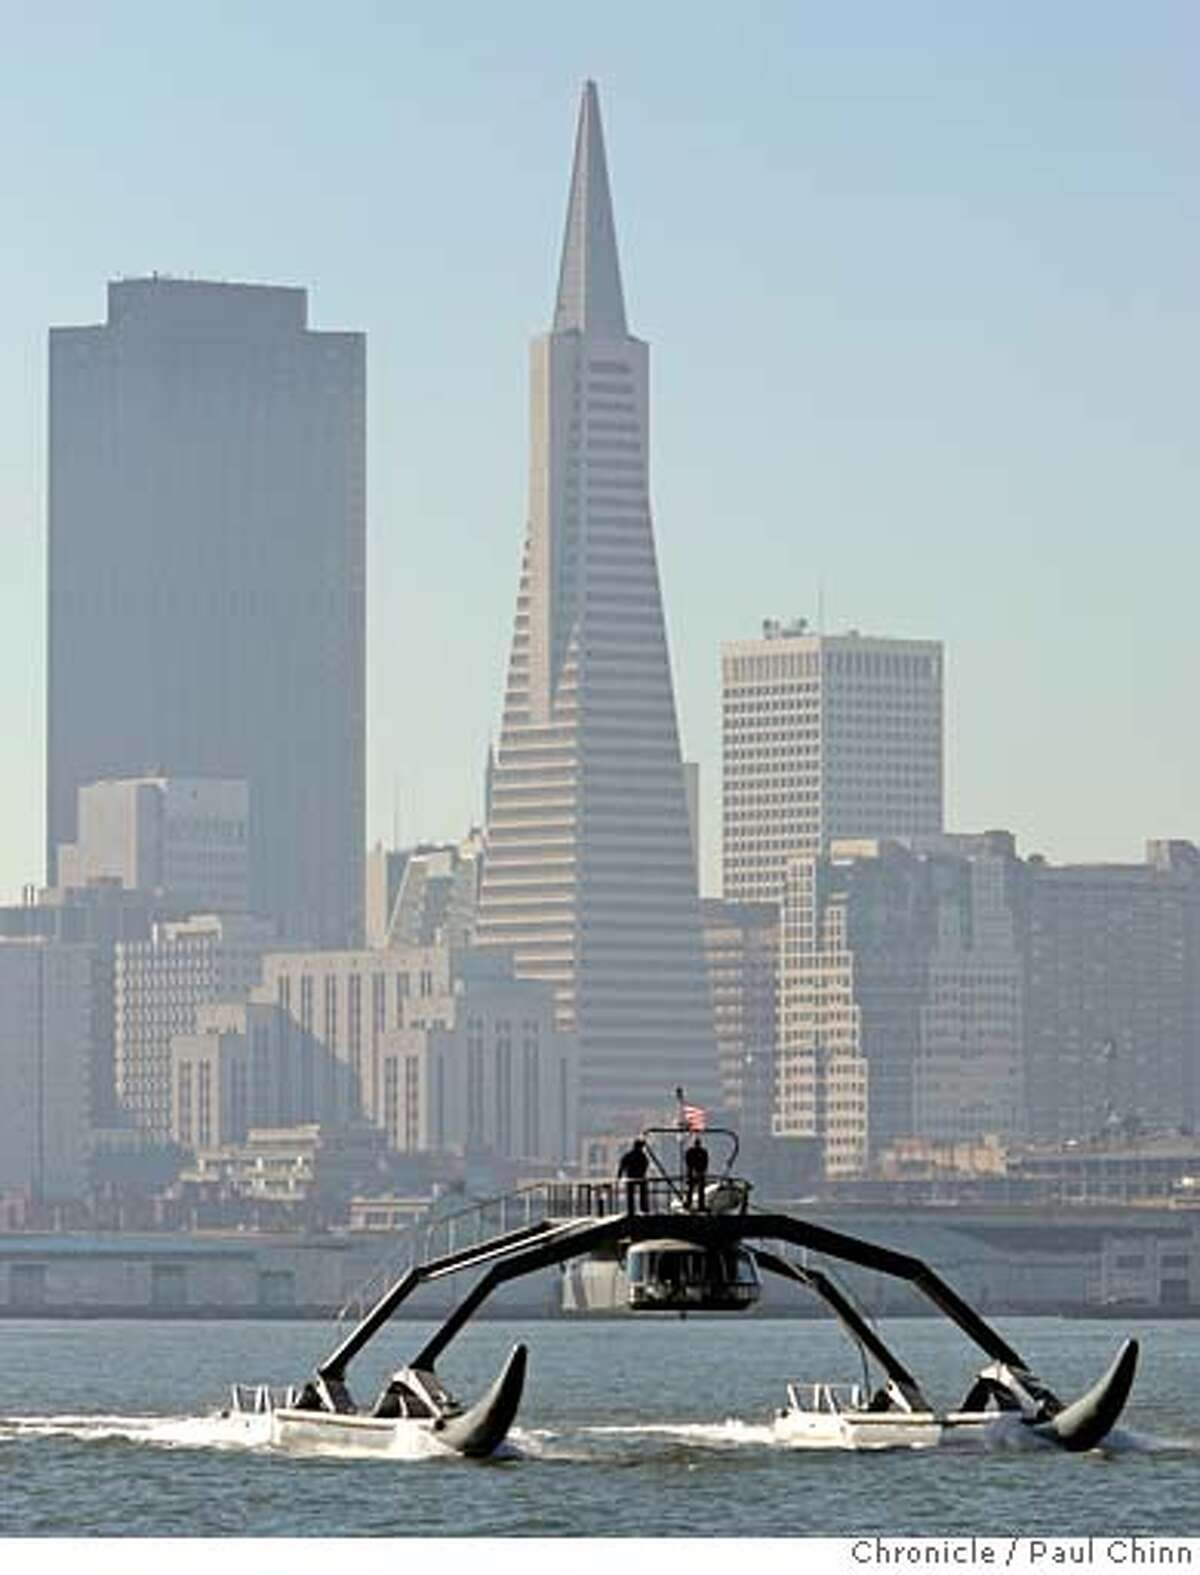 The Proteus, a prototype Wave Adaptive Modular Vessel, during a test run on the bay in San Francisco, Calif. on Thursday, Jan. 18, 2007. The WAM-V, designed and created by Ugo Conti, is 100-feet long and is capable of crossing the ocean. PAUL CHINN/The Chronicle **Ugo Conti